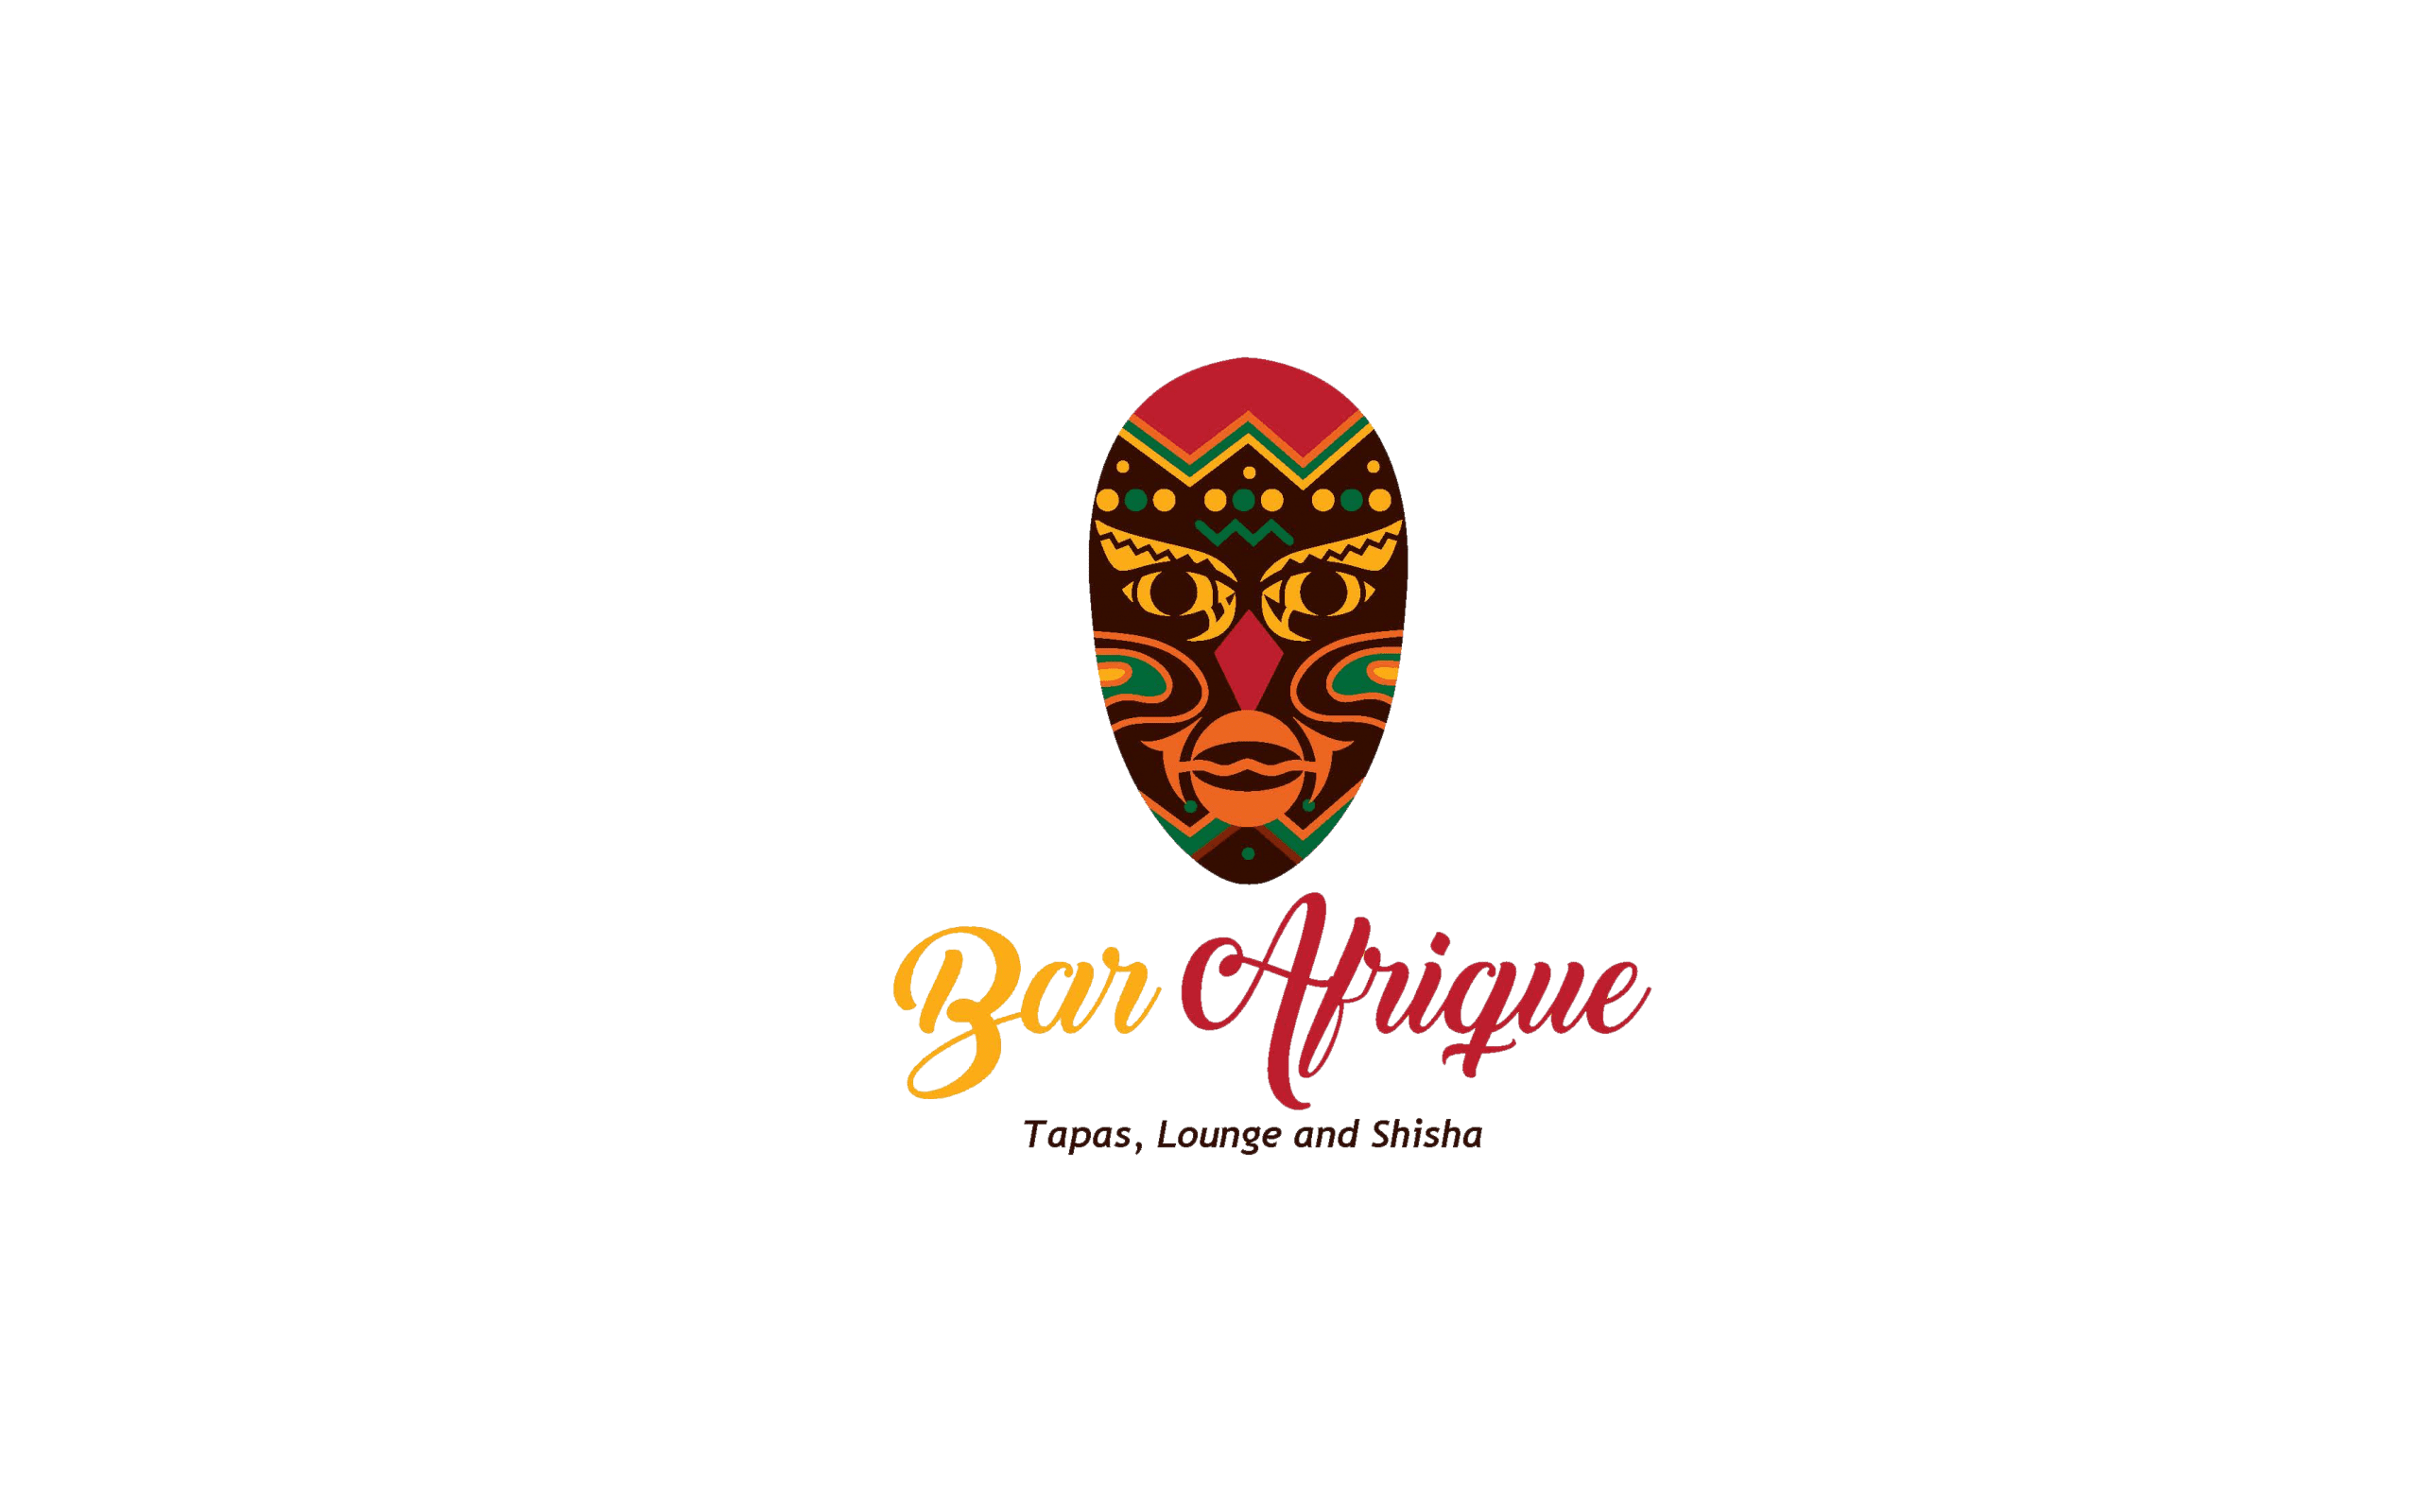 BAR AFRIQUE PNG LOGO - A List Business Card Bournemouth